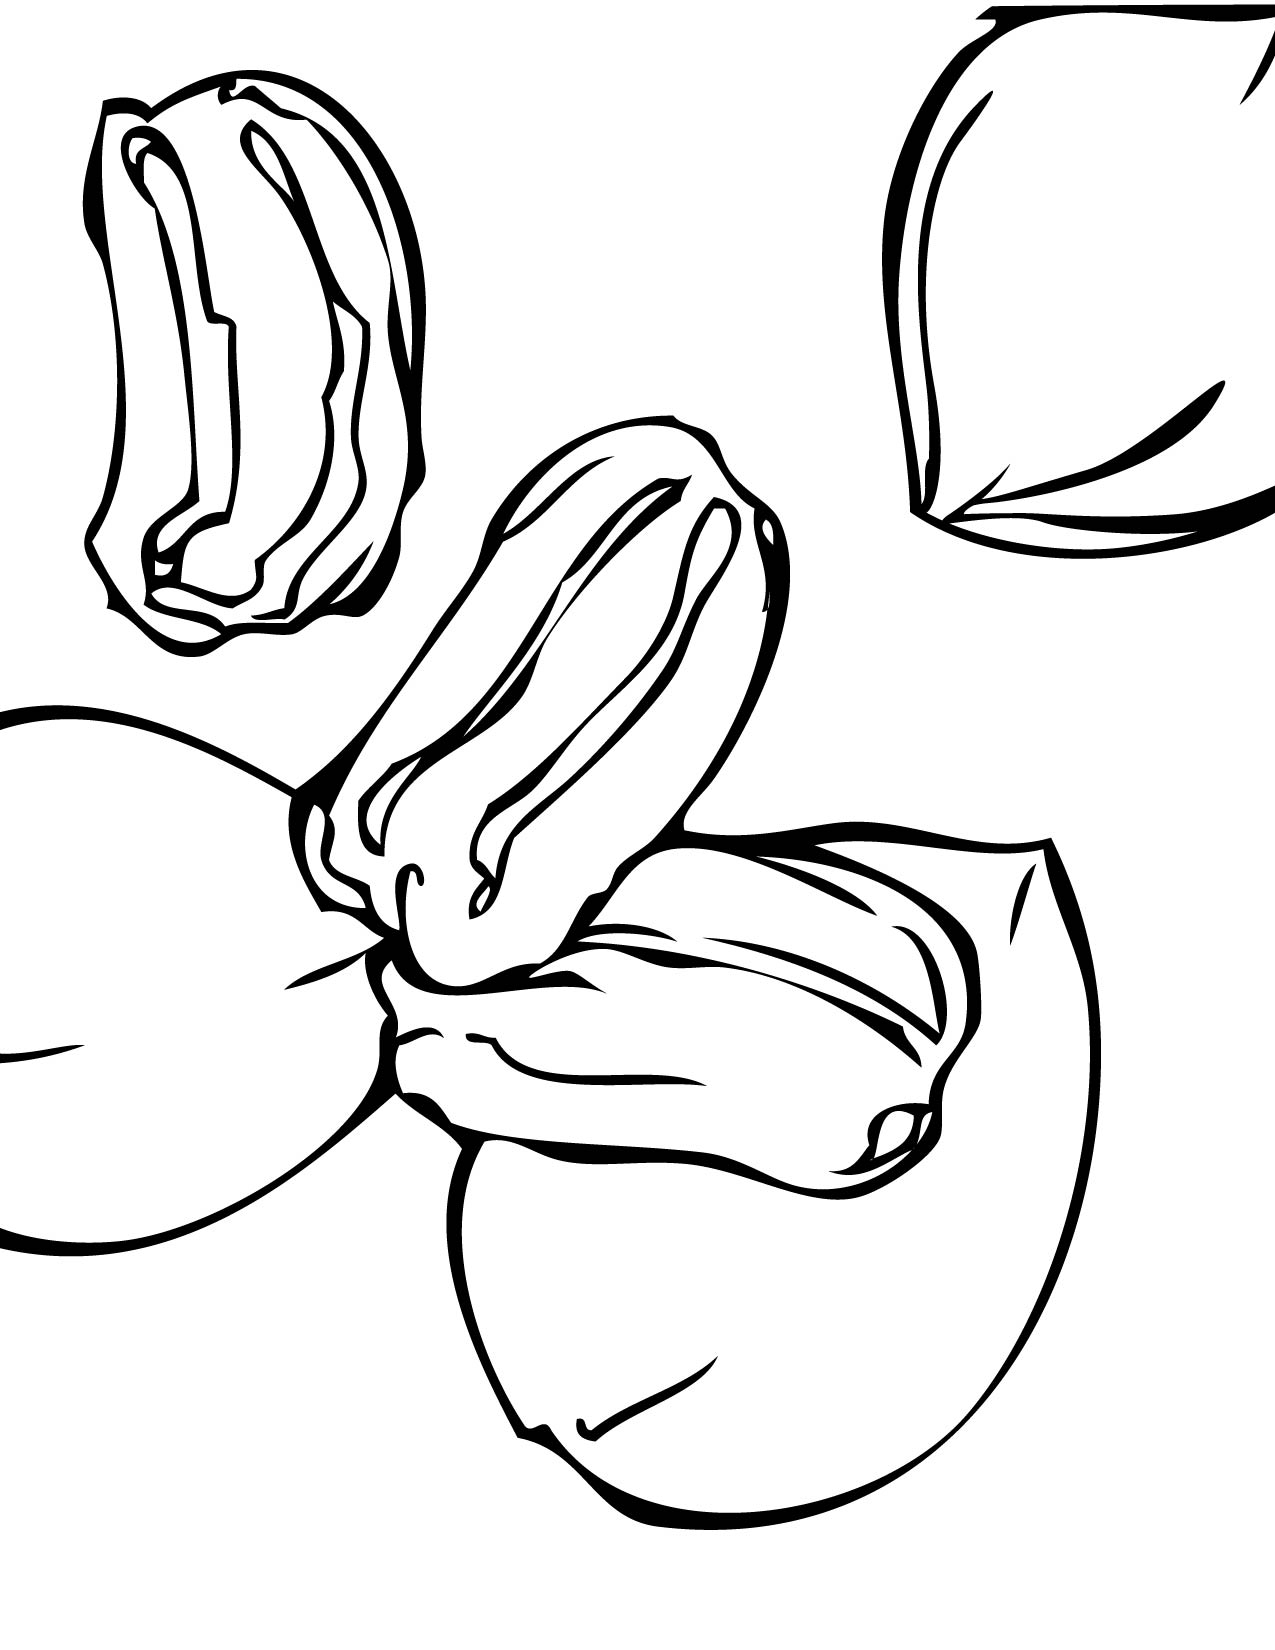 Nut clipart coloring Pages for for Kids Nut